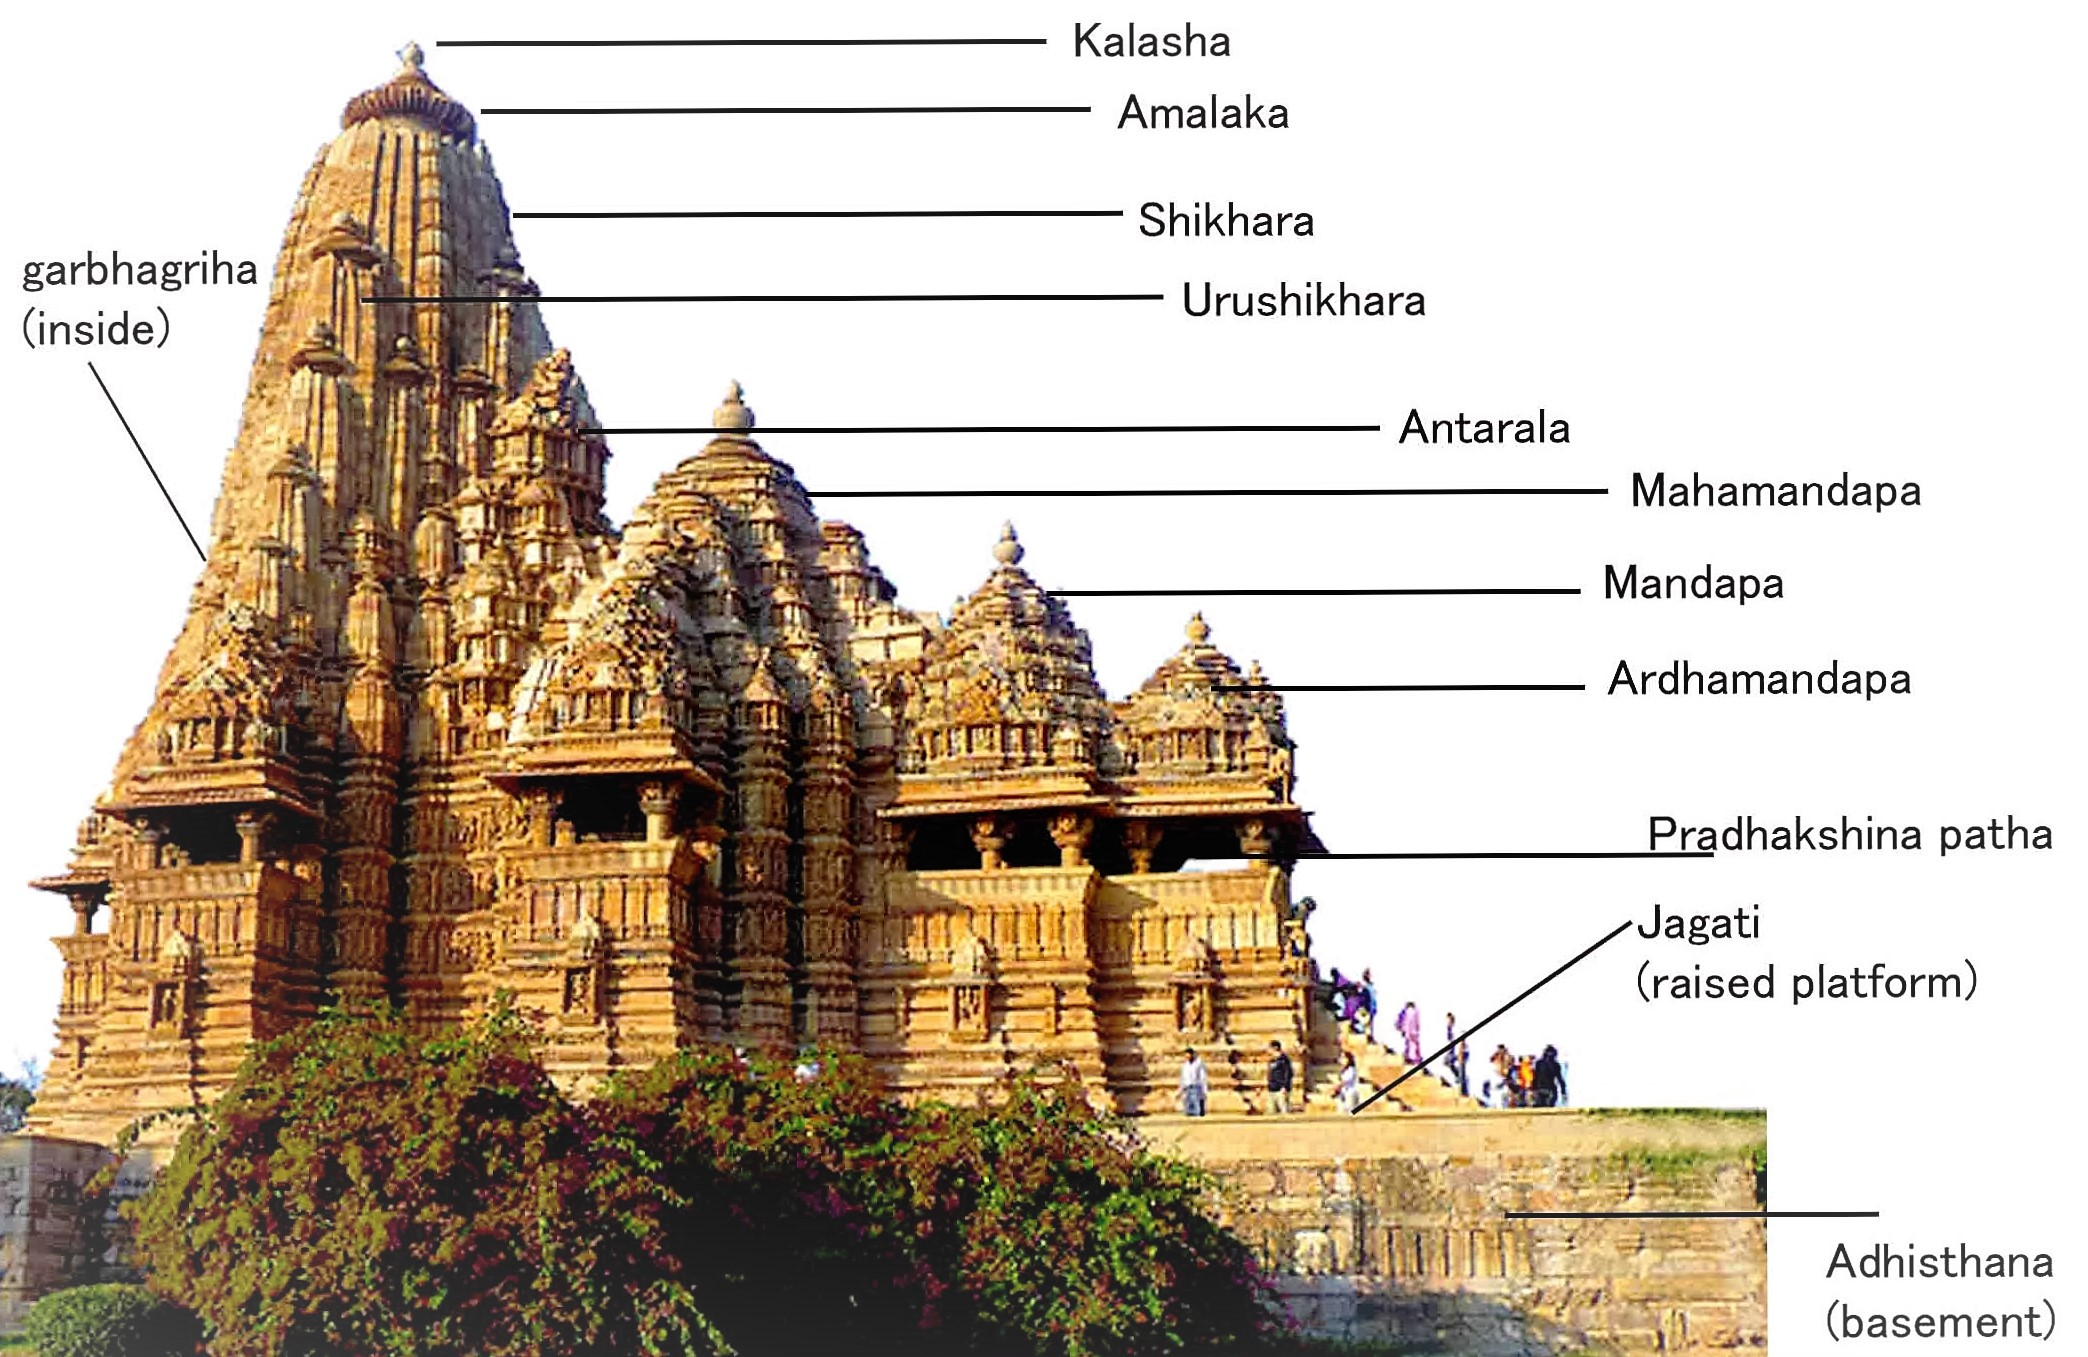 Hindu temple architecture and structure of human body symbolism temple structure and symbolism biocorpaavc Gallery